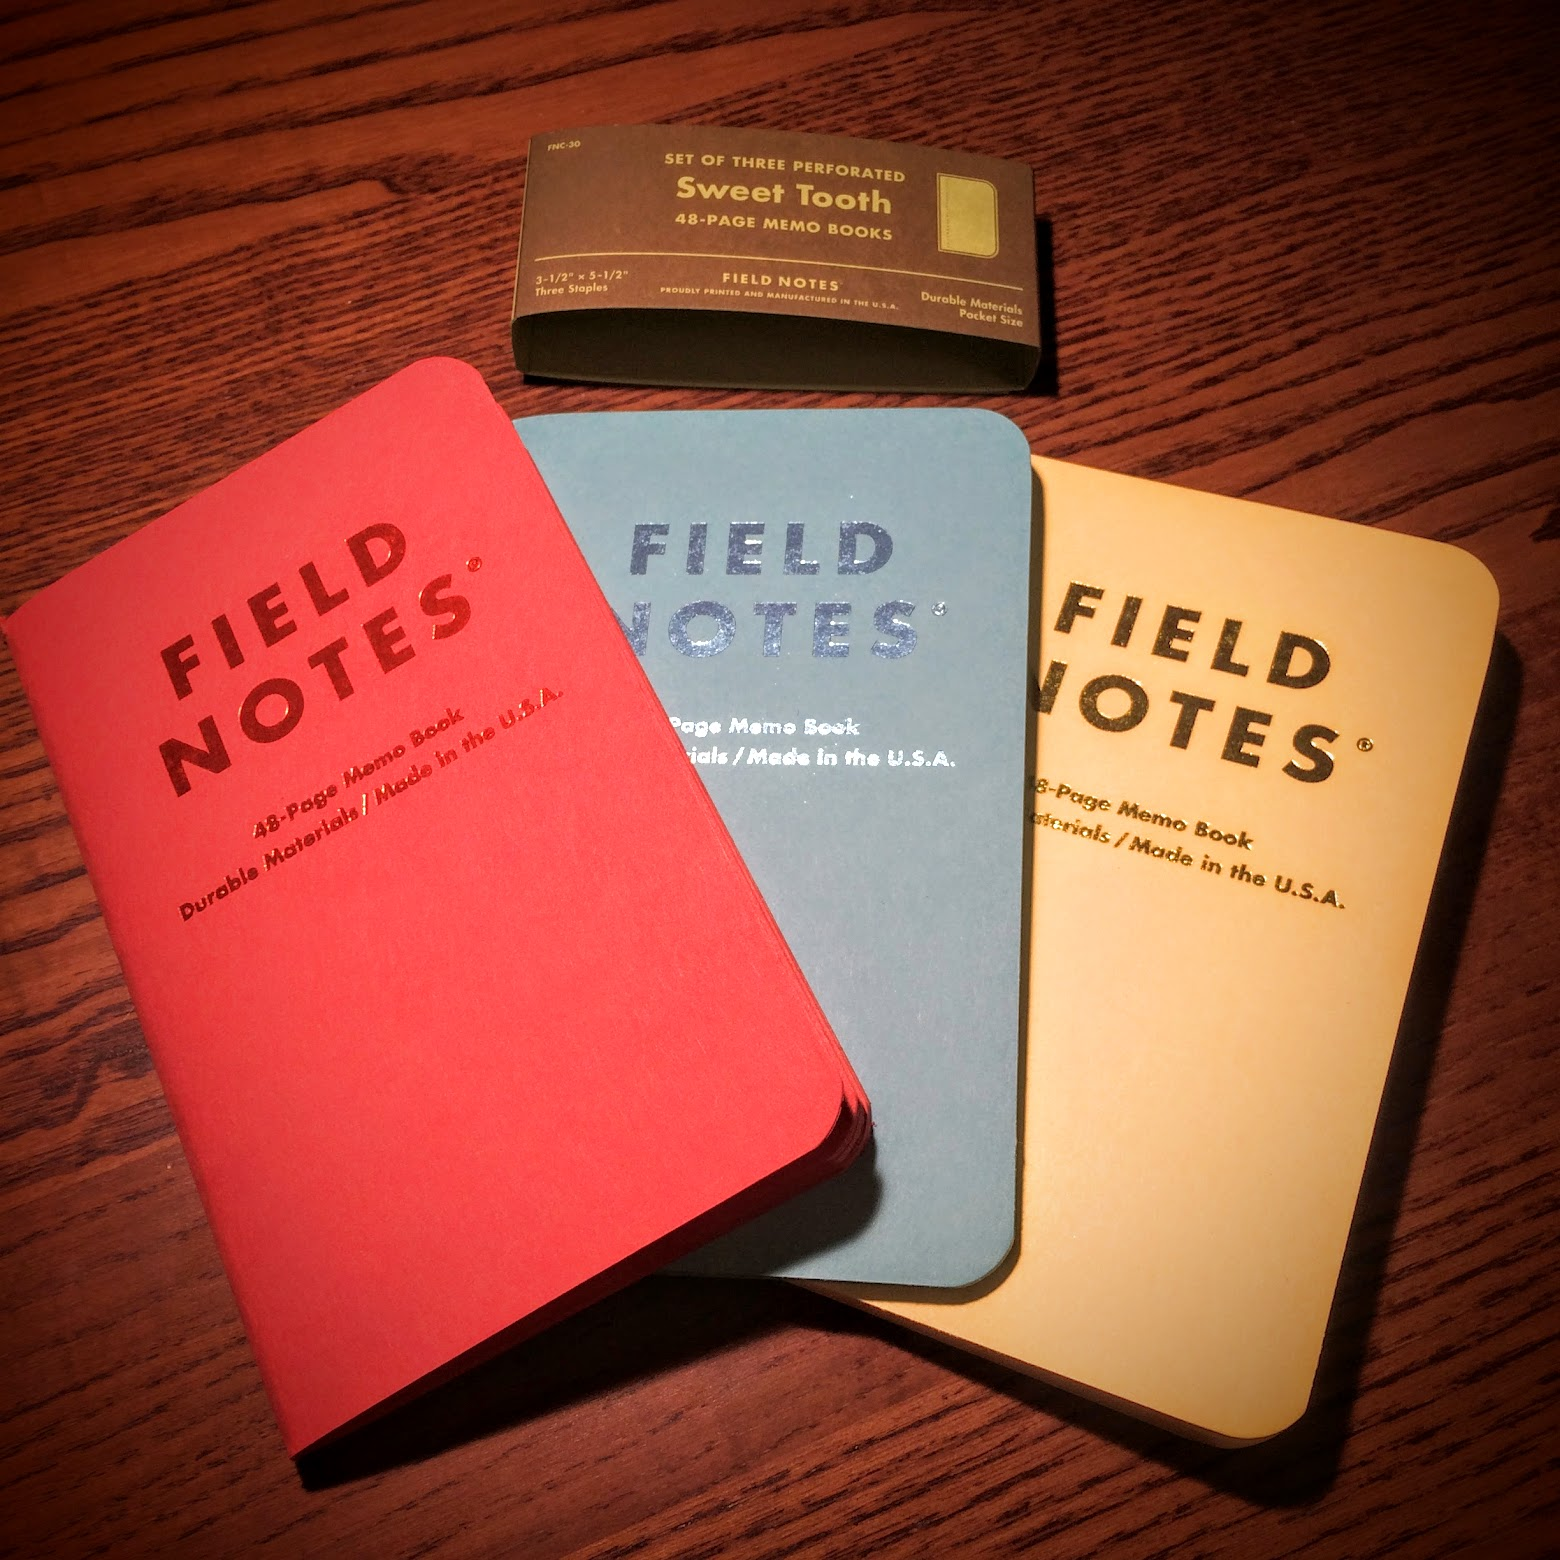 Steven Combs Field Notes Sweet Tooth memo books review – Field Note